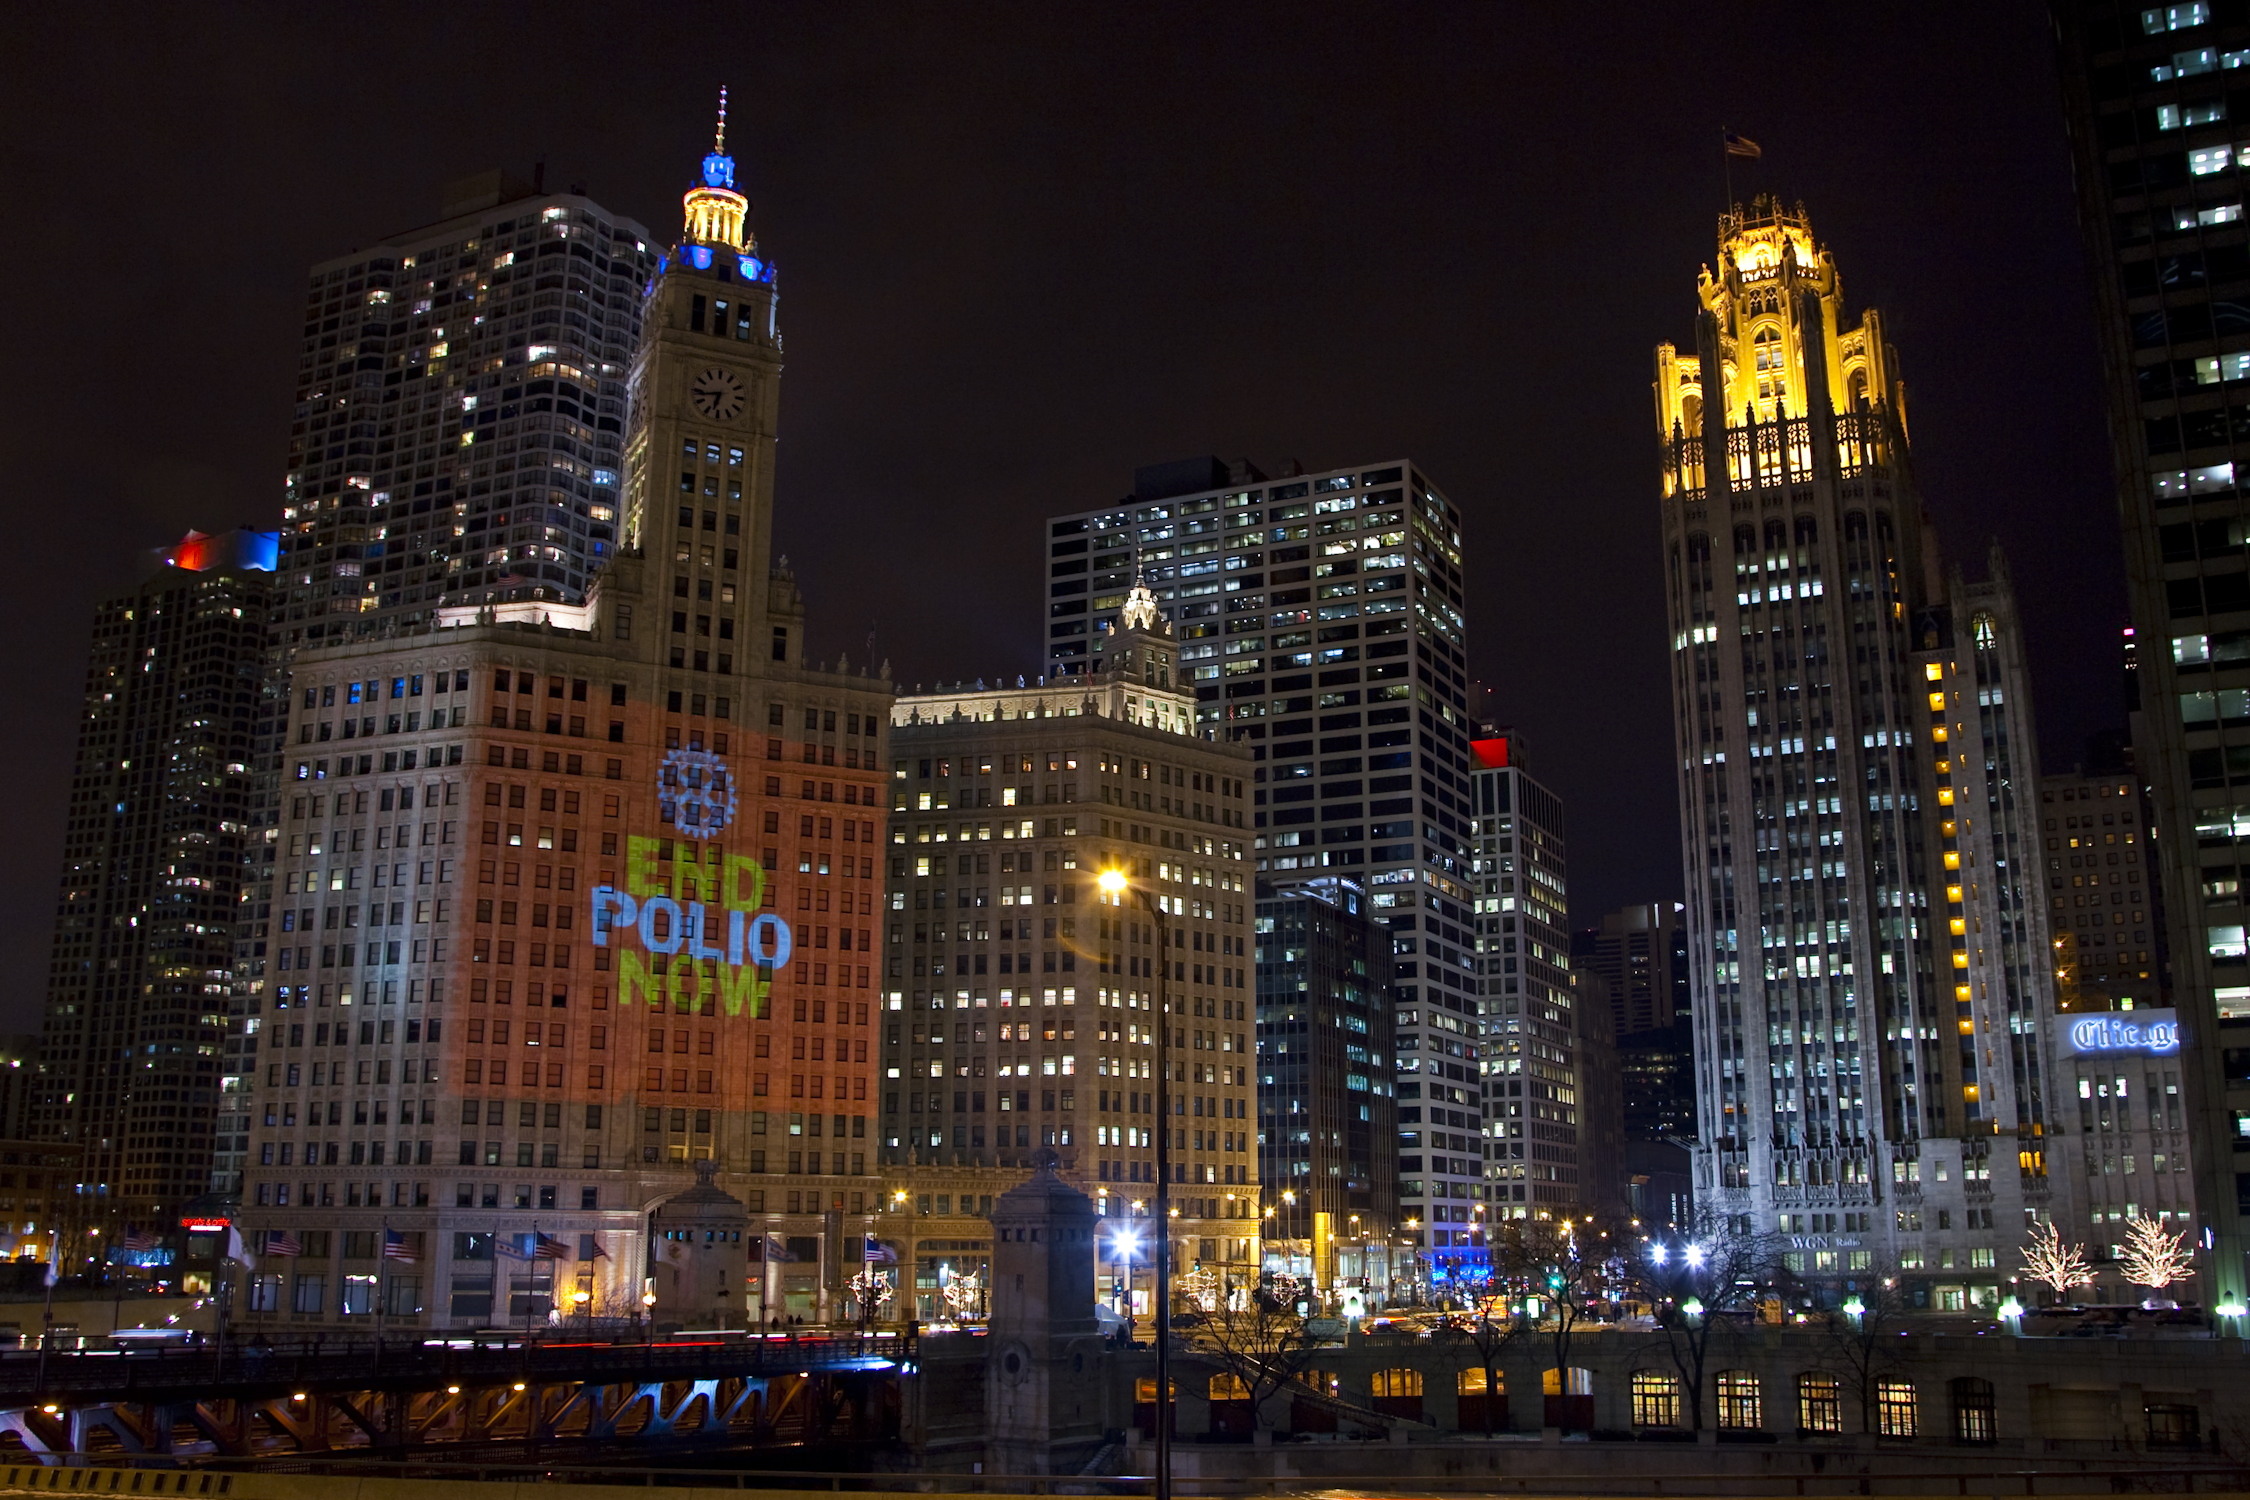 The Wrigley Building in Chicago was illuminated in 2010.